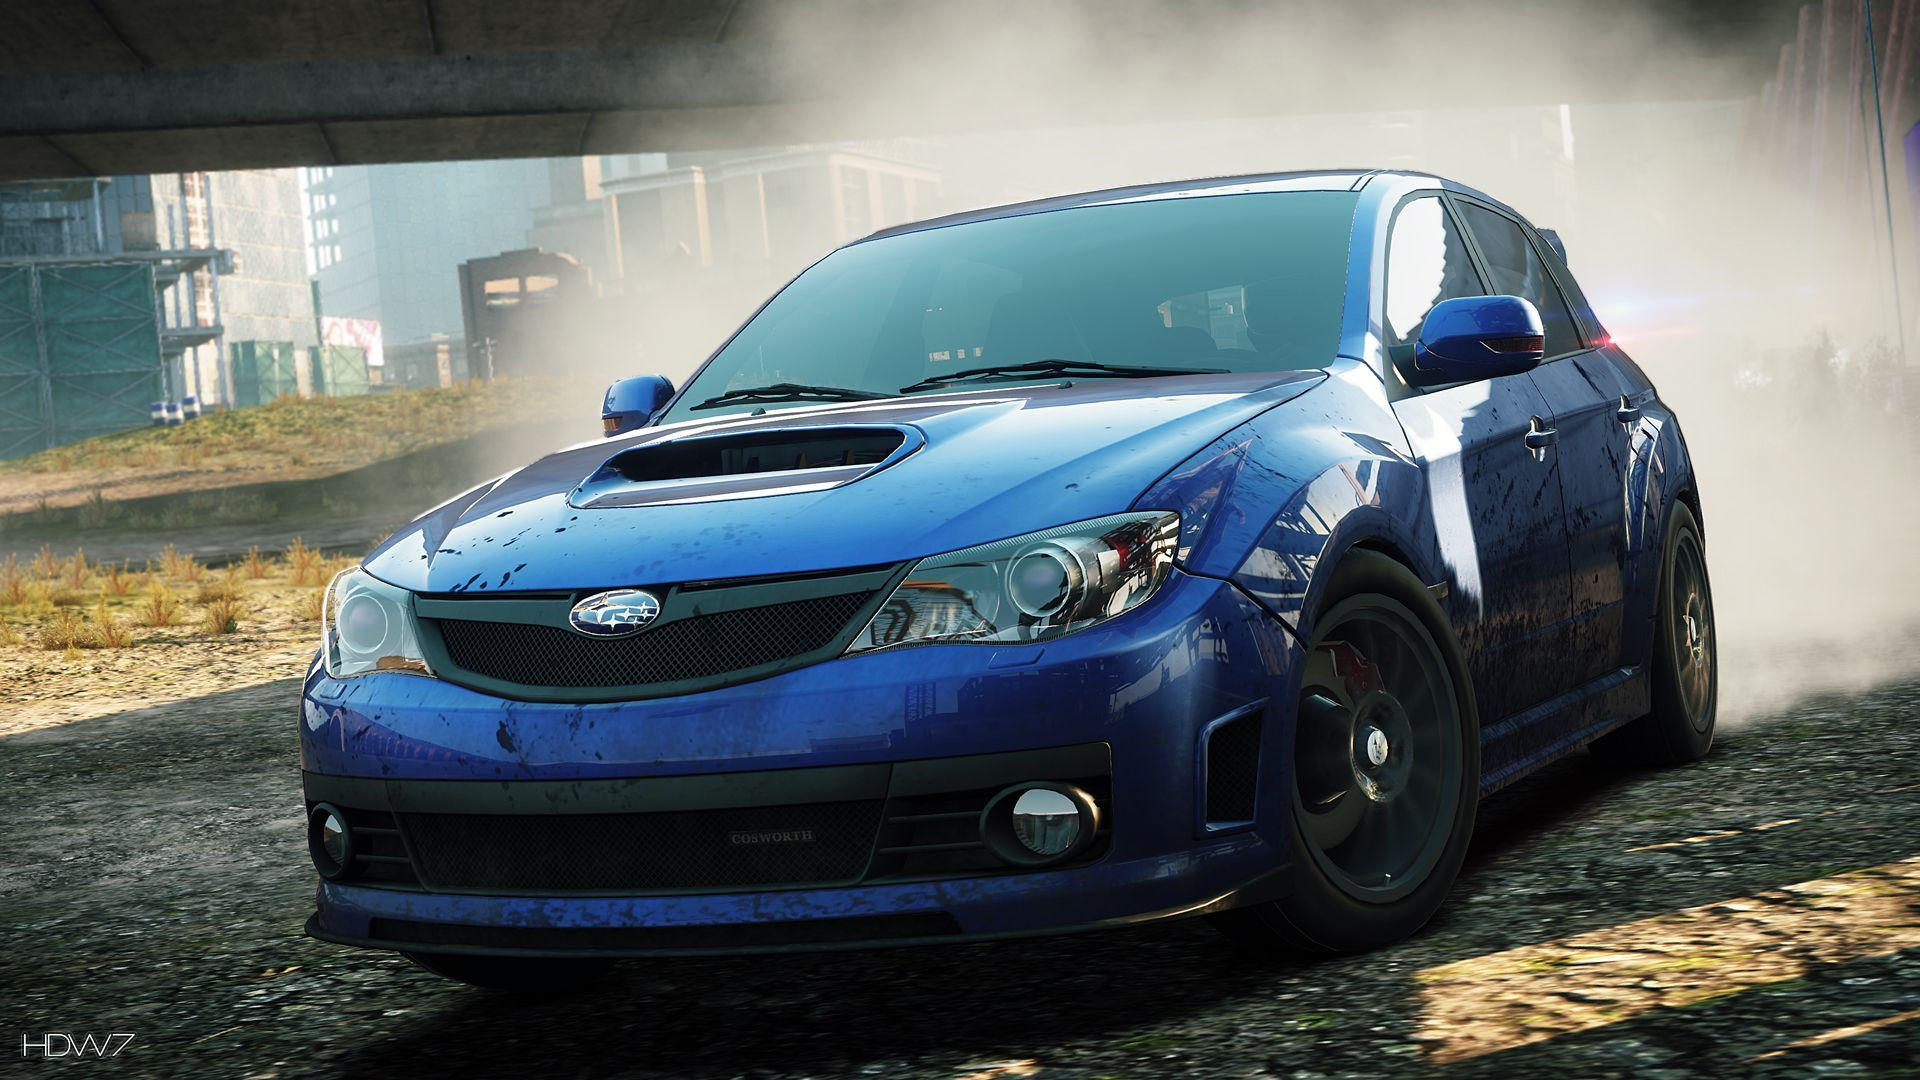 Need for speed most wanted 2012 subaru cosworth impreza sti cs400 need for speed most wanted 2012 subaru cosworth impreza sti cs400 widescreen hd wallpaper vanachro Choice Image